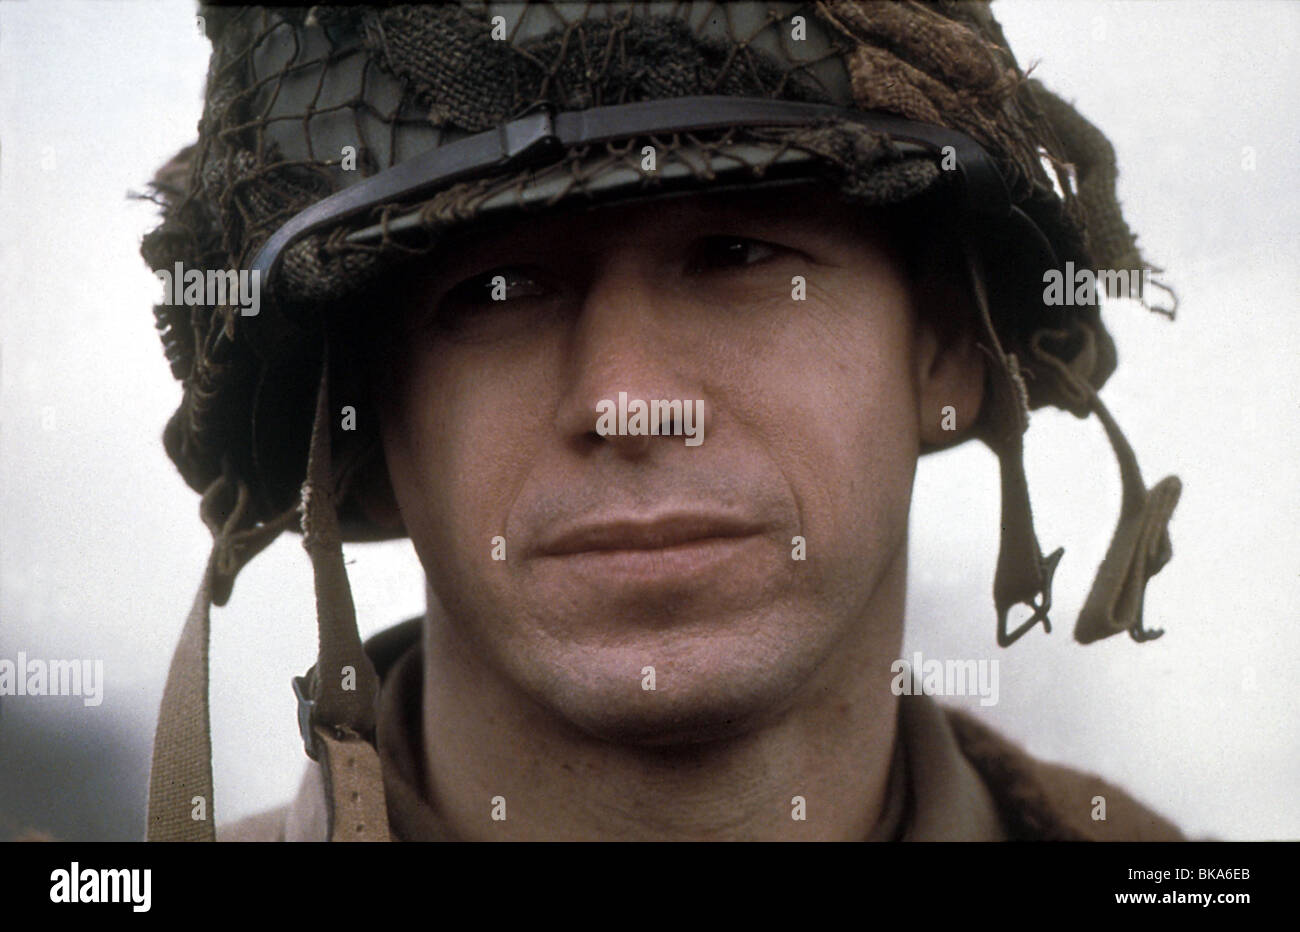 BAND OF BROTHERS (TV) DONNIE WAHLBERG BDBS 005 - Stock Image